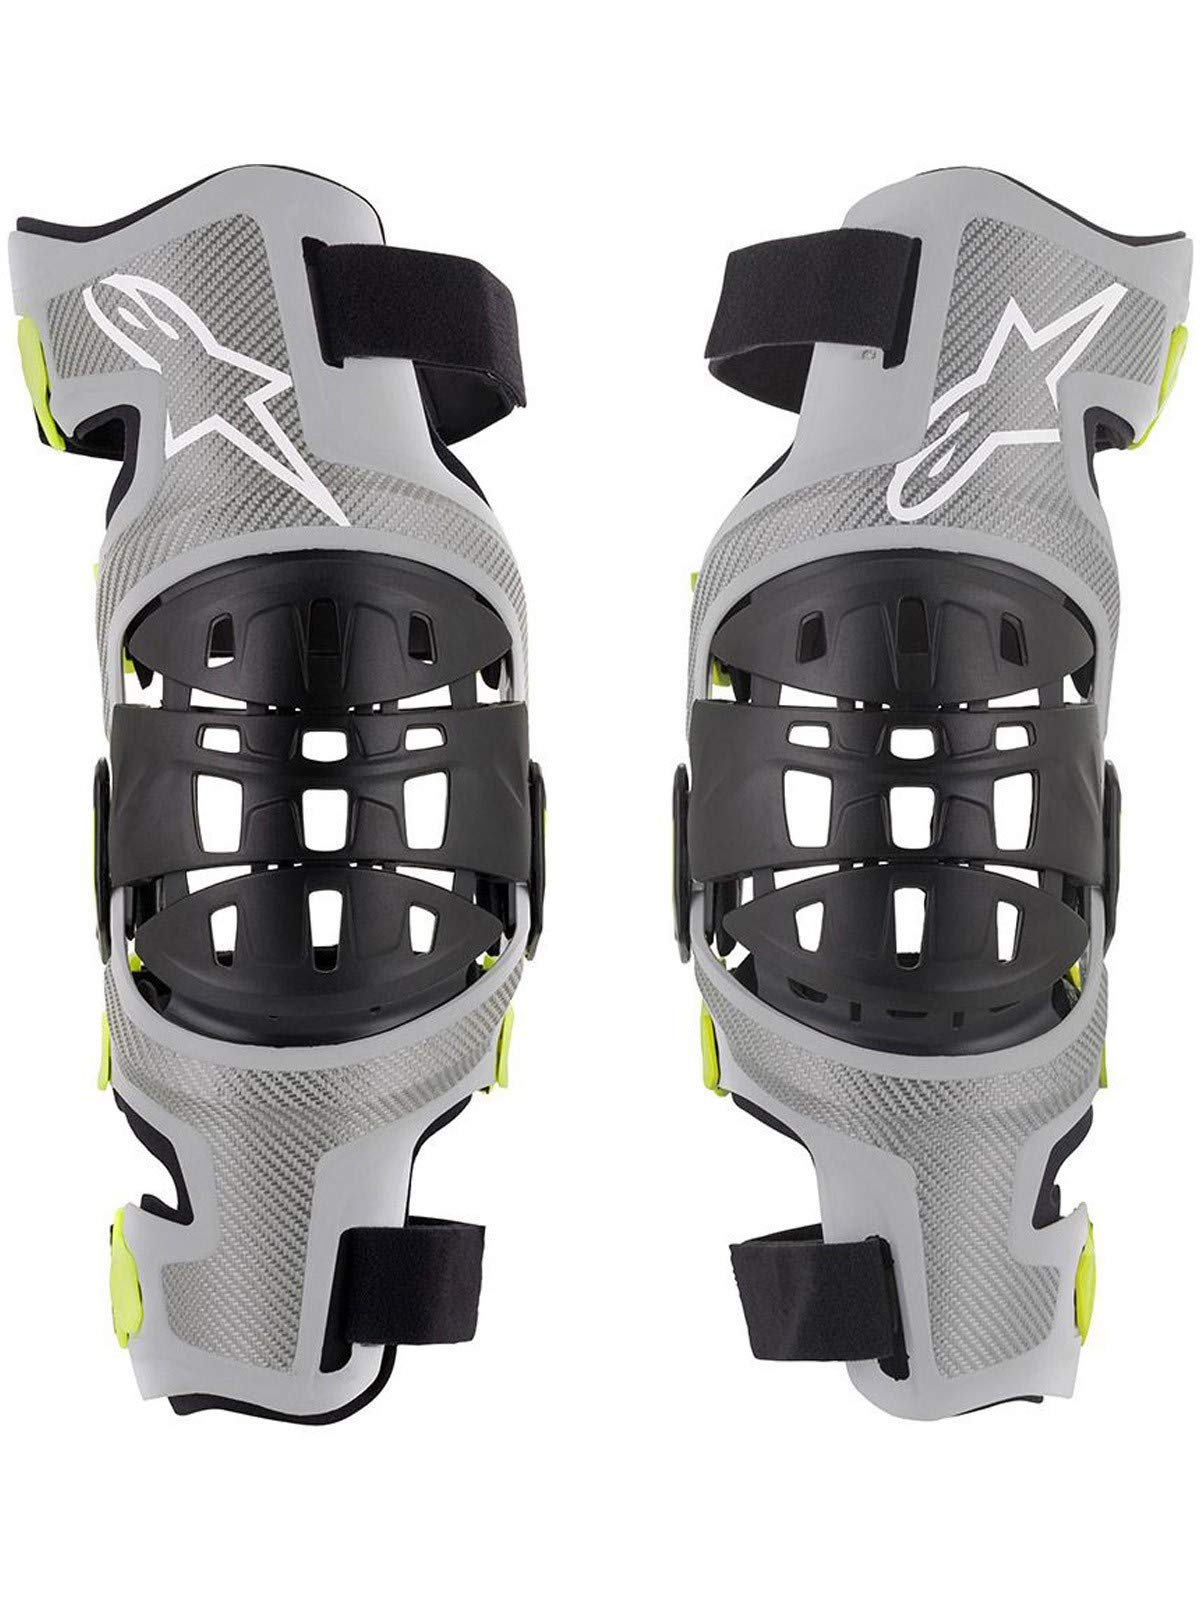 Bionic-7 Off-Road Motocross Knee Brace Set (Medium, Silver Yellow Fluo)